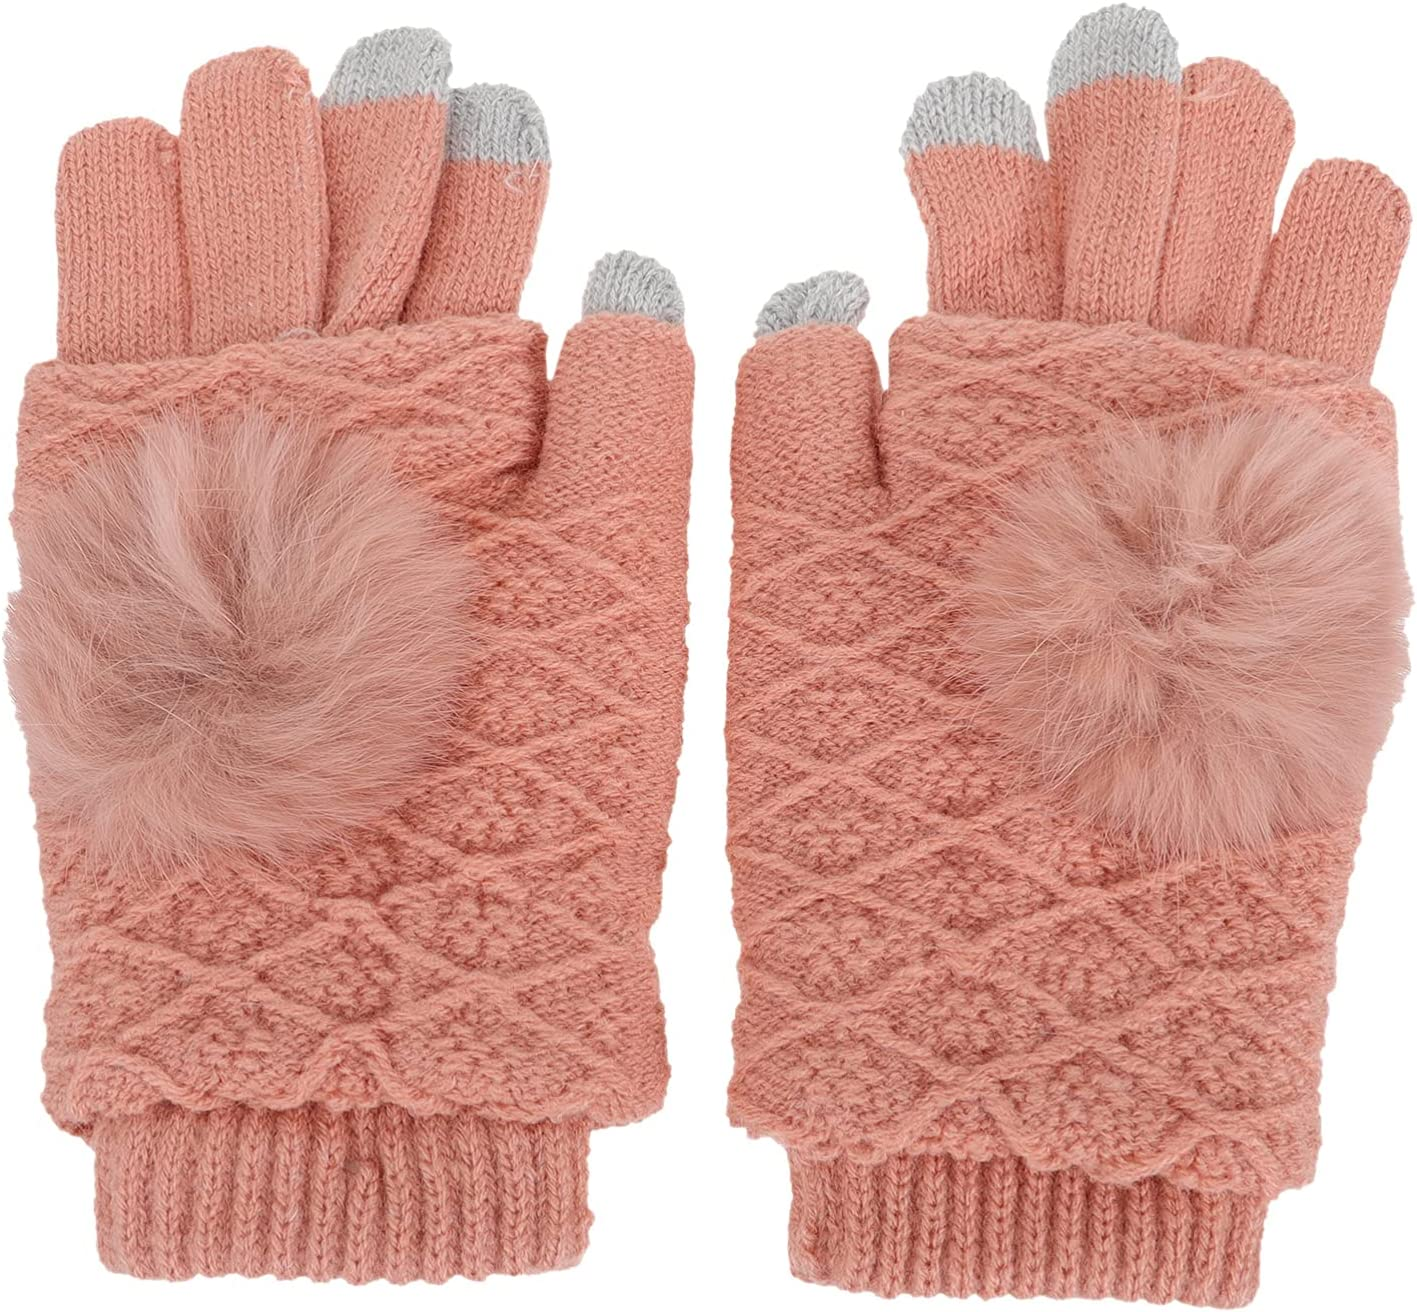 Amosfun 1 Pair Women Knitted Gloves Autumn Winter Warm Thick Gloves Touch Screen Gloves